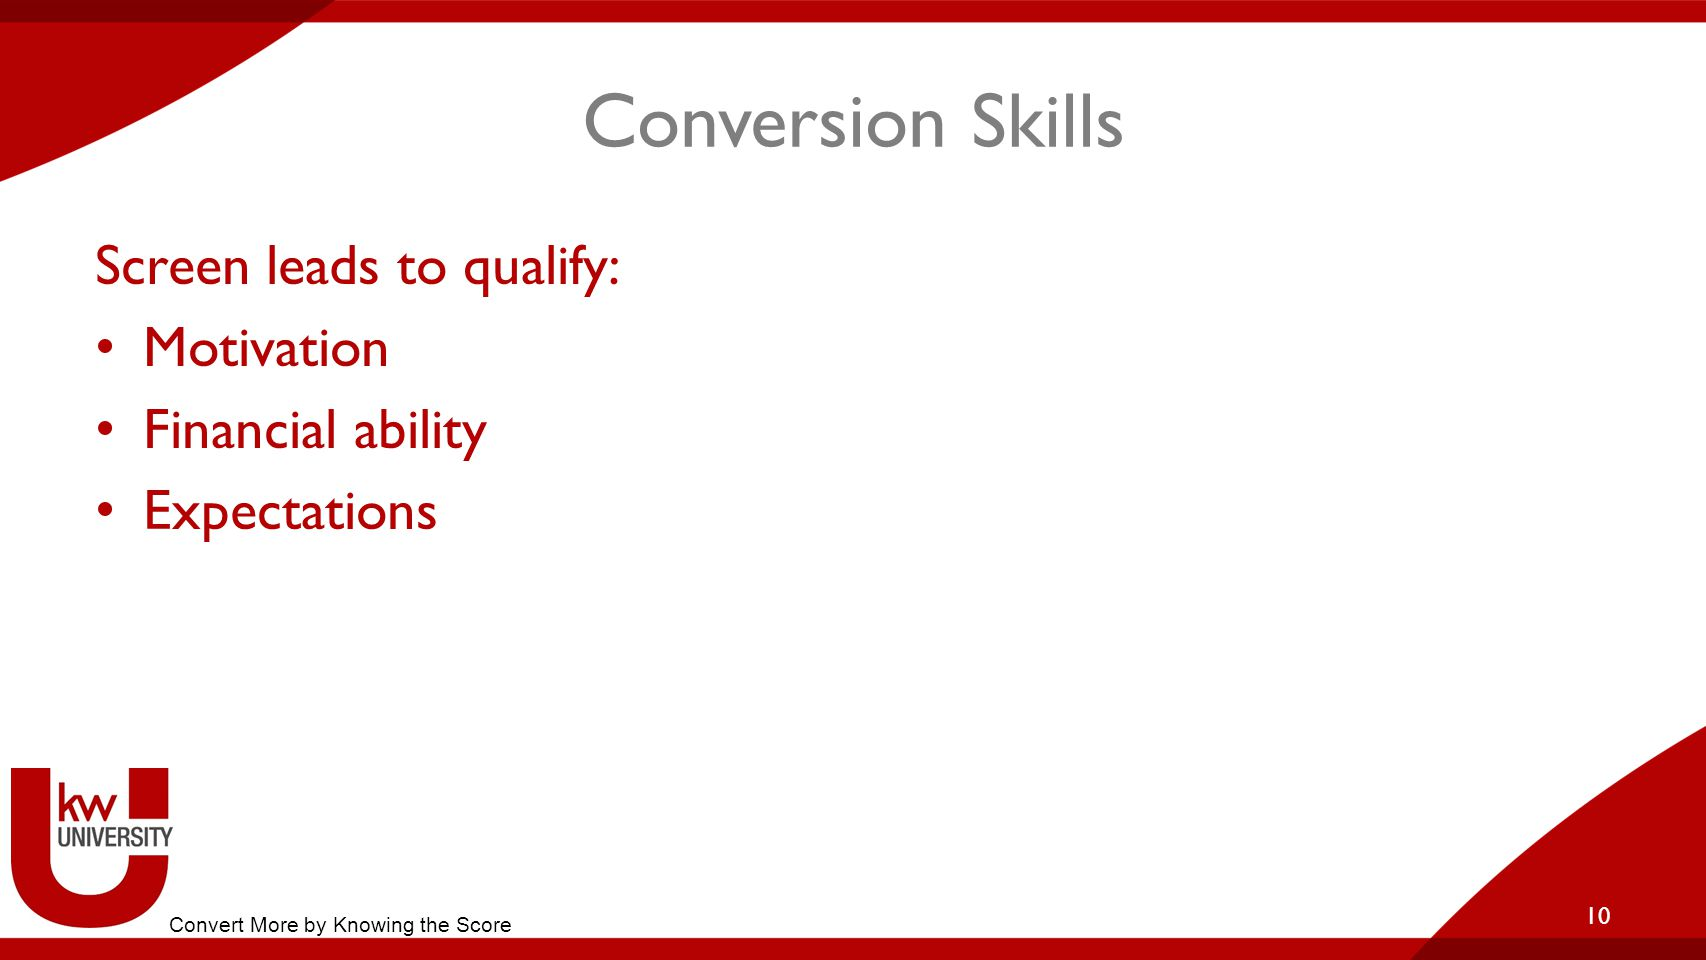 Conversion Skills Screen leads to qualify: Motivation